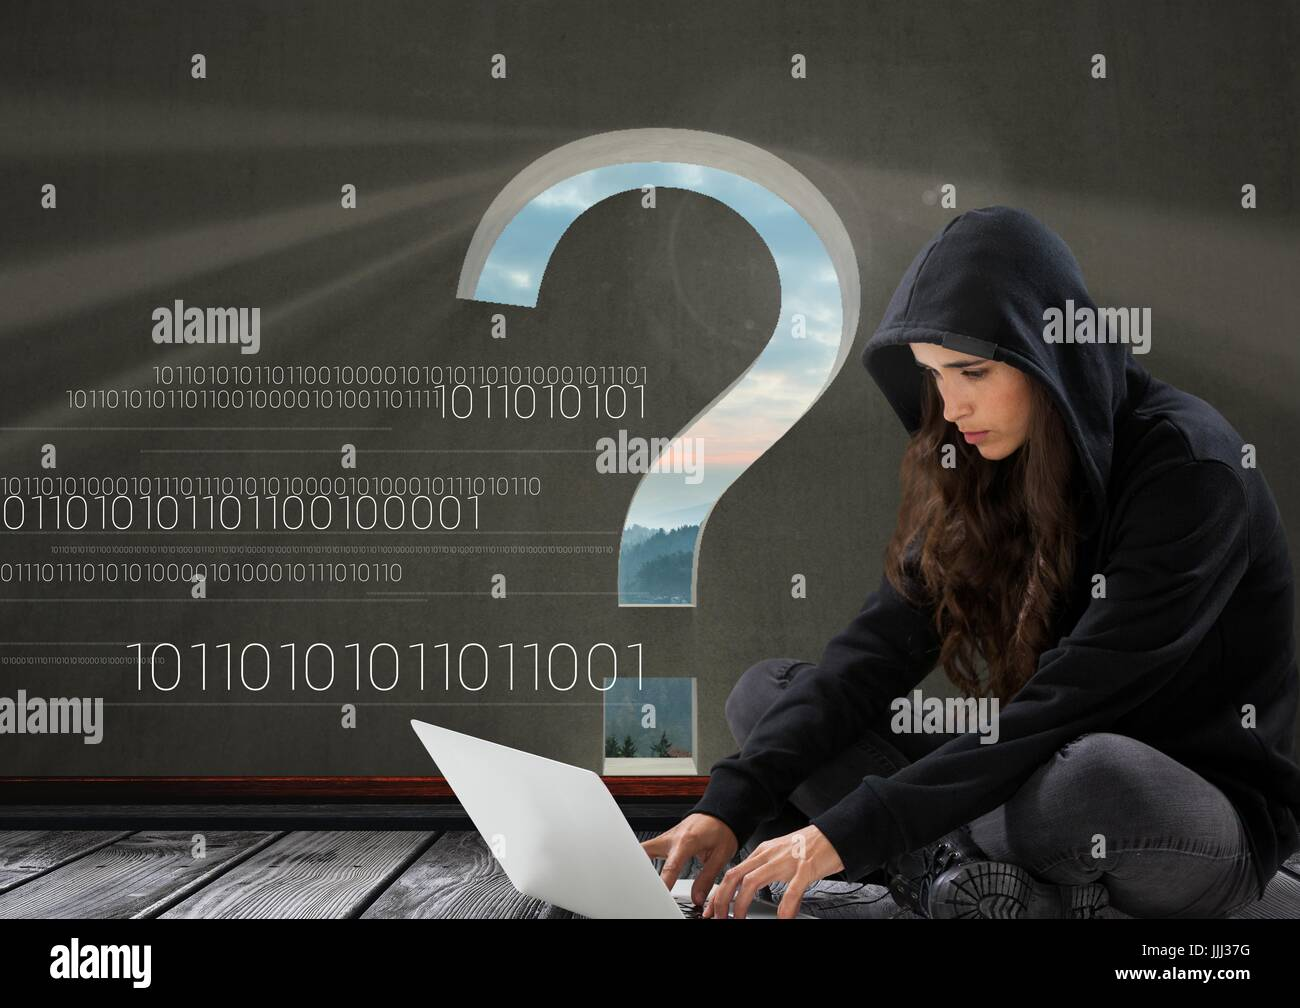 Woman hacker seated and working on a laptop with a grey background with a 3D question mark - Stock Image